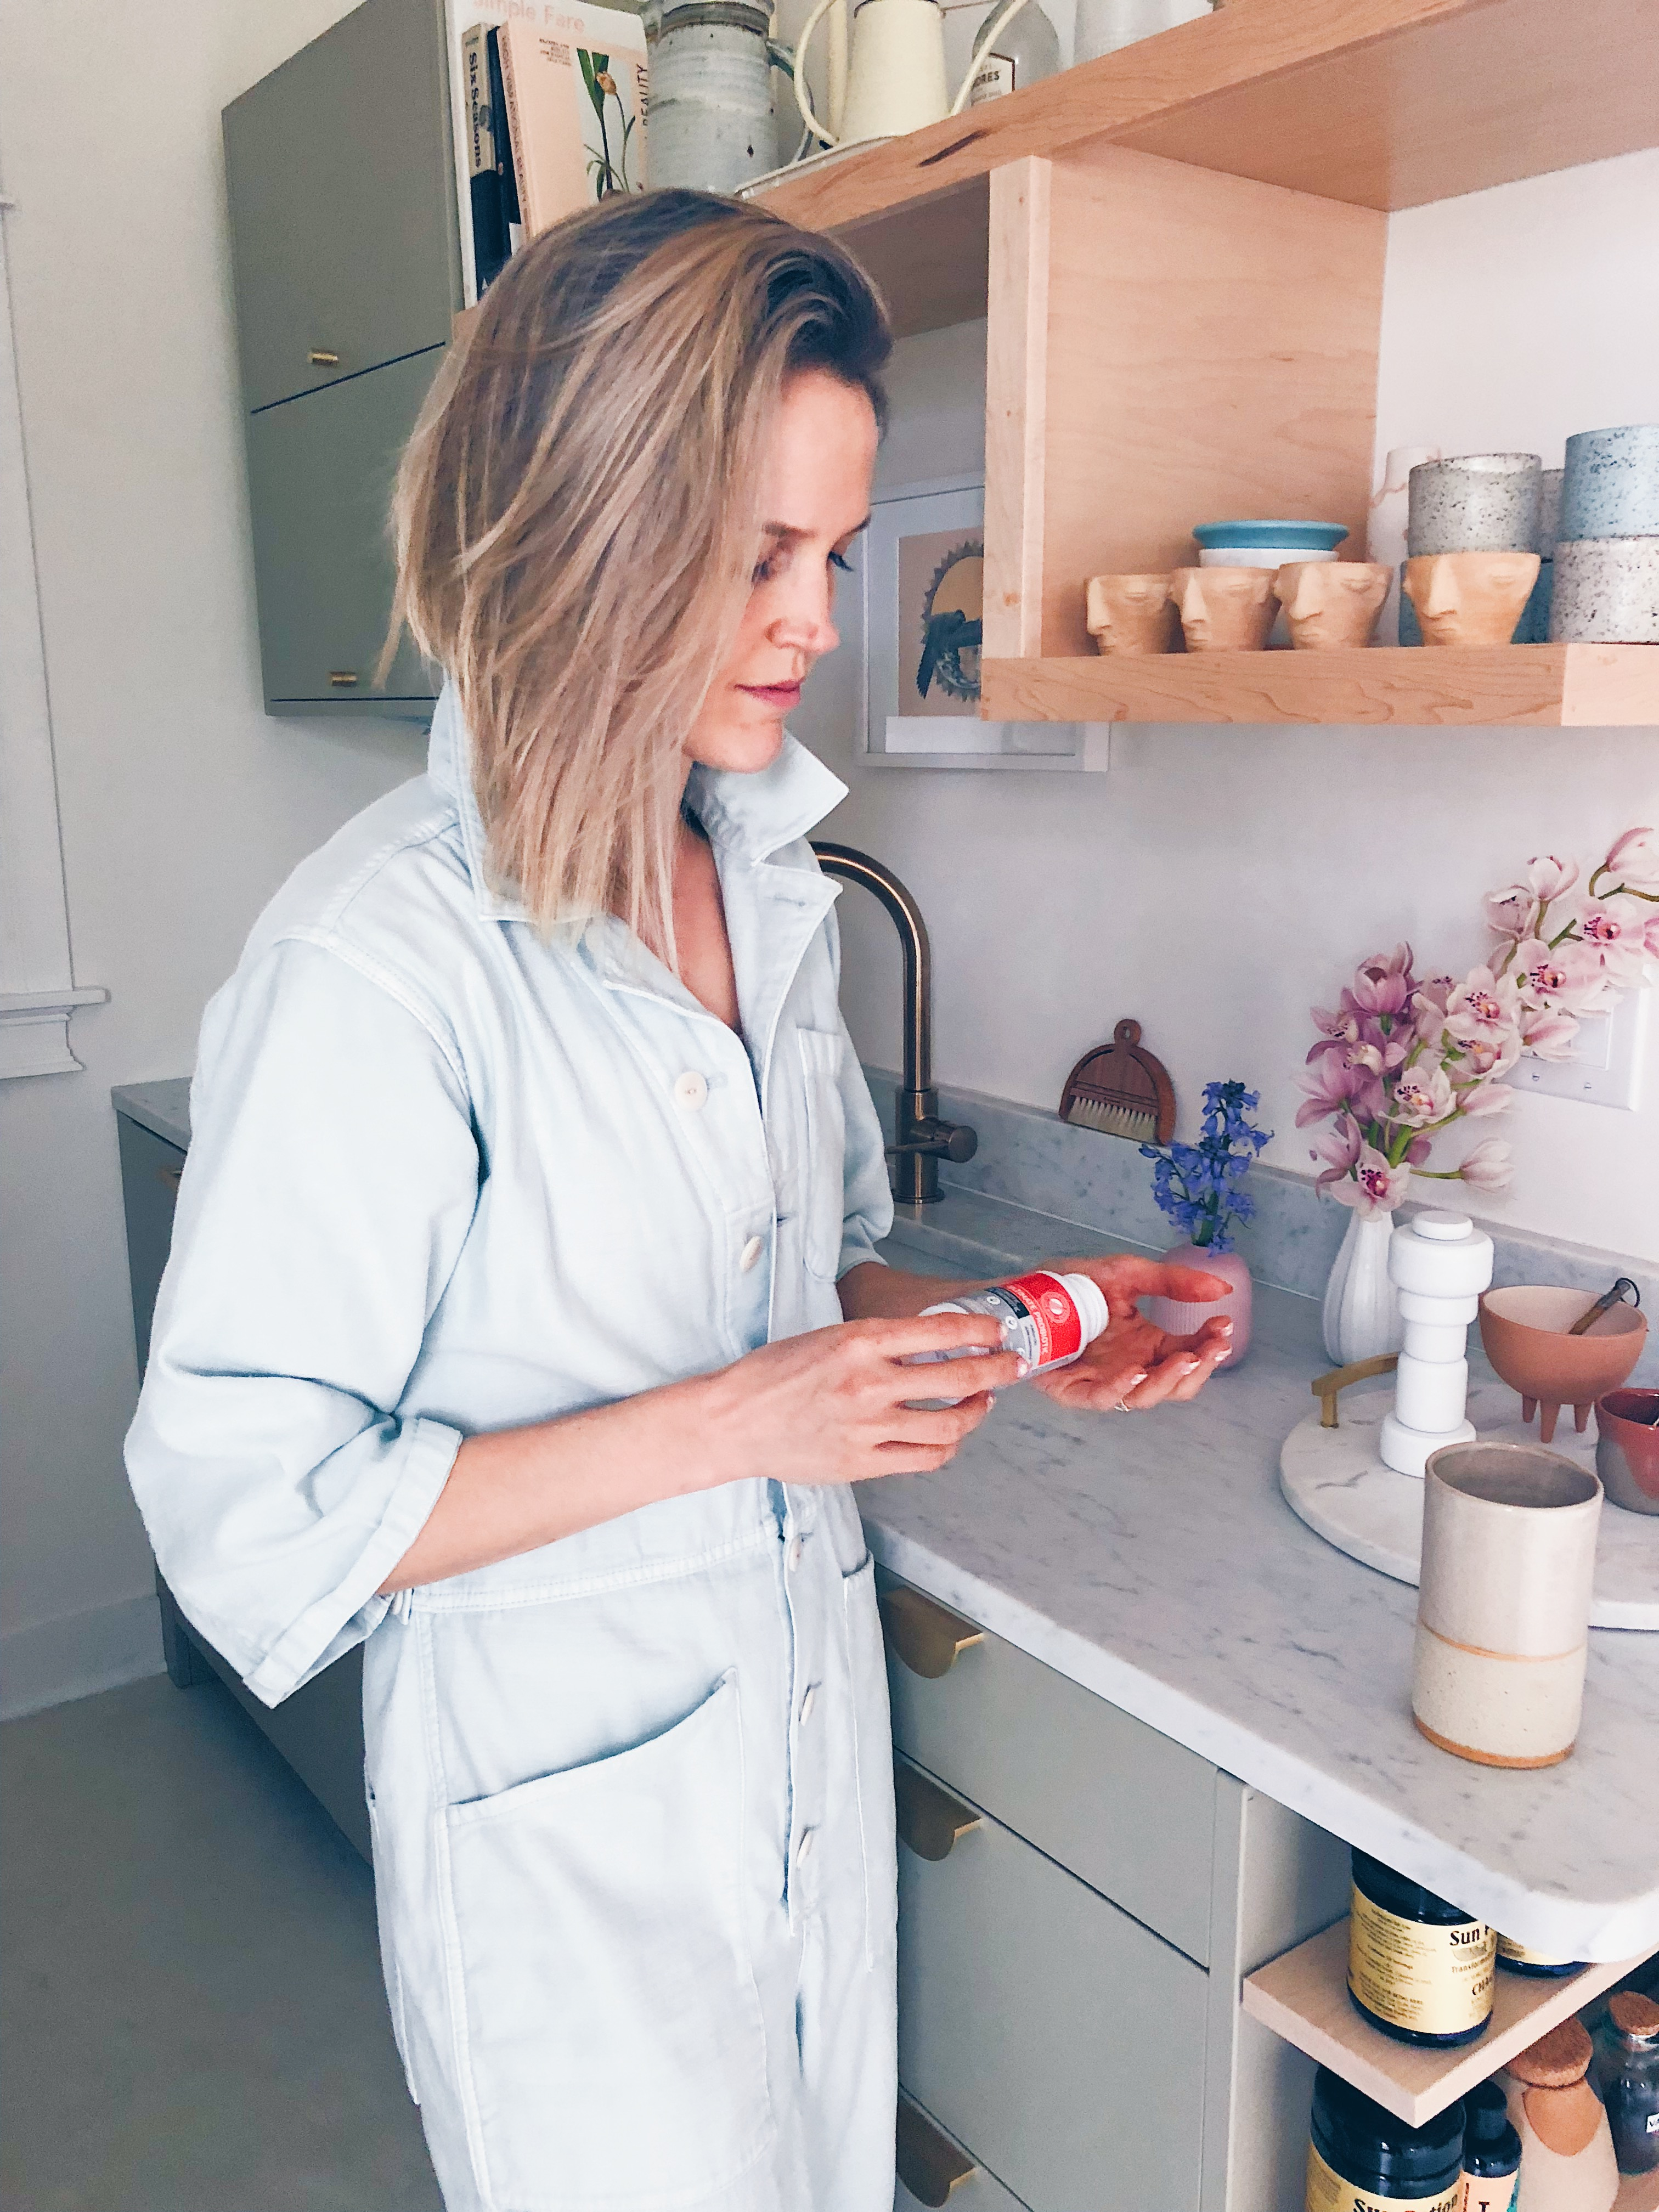 My Experience with SIBO and How I Found Balance with Digestive